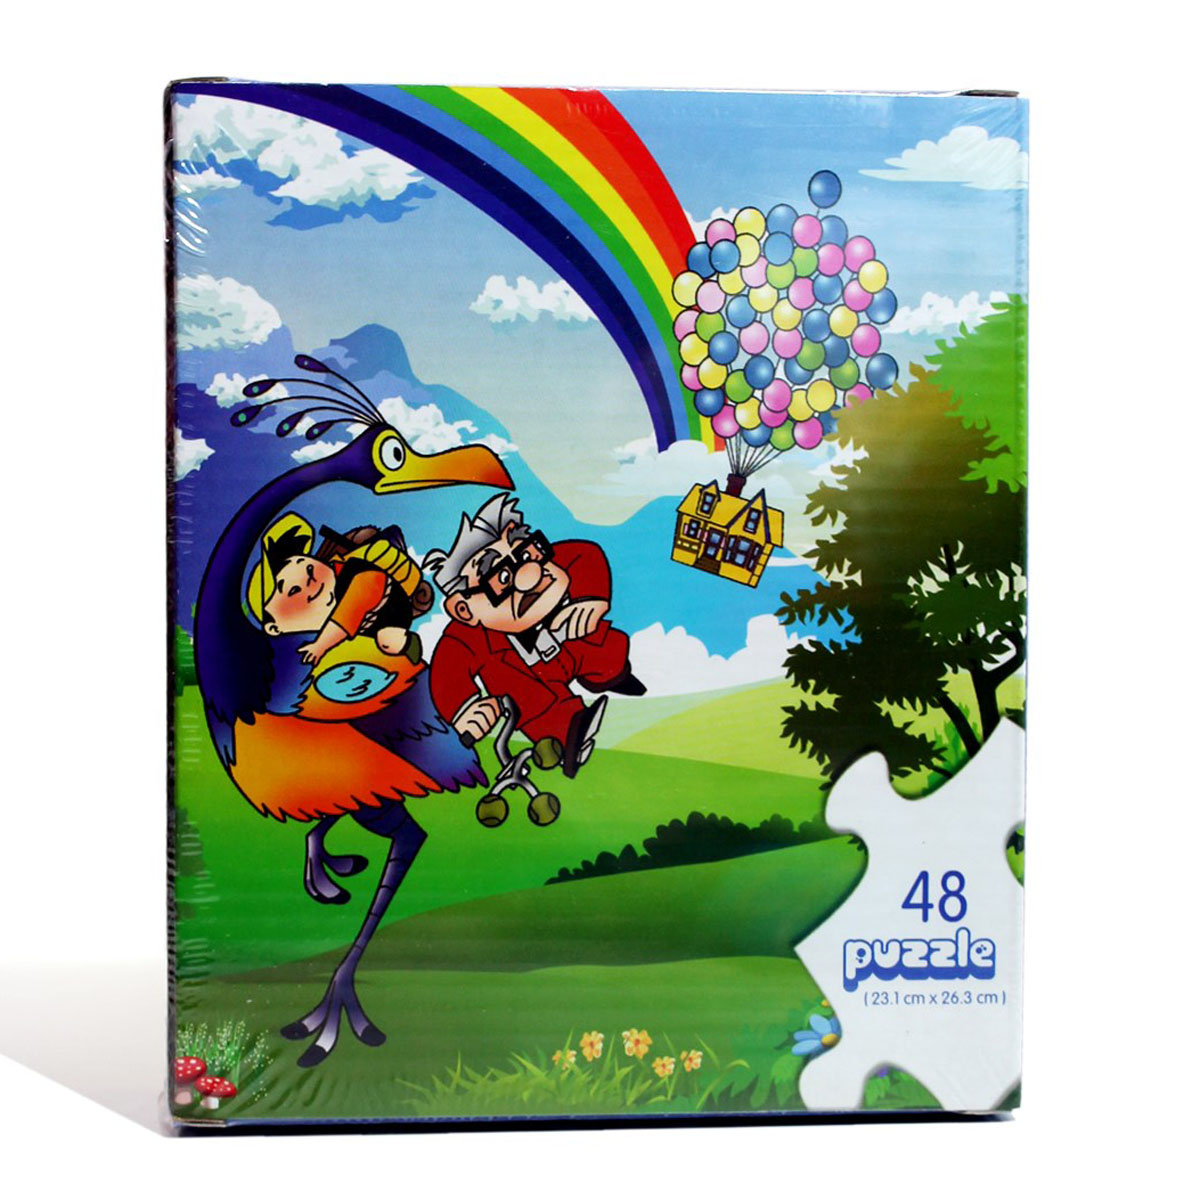 Xep hinh Puzzle up WD234